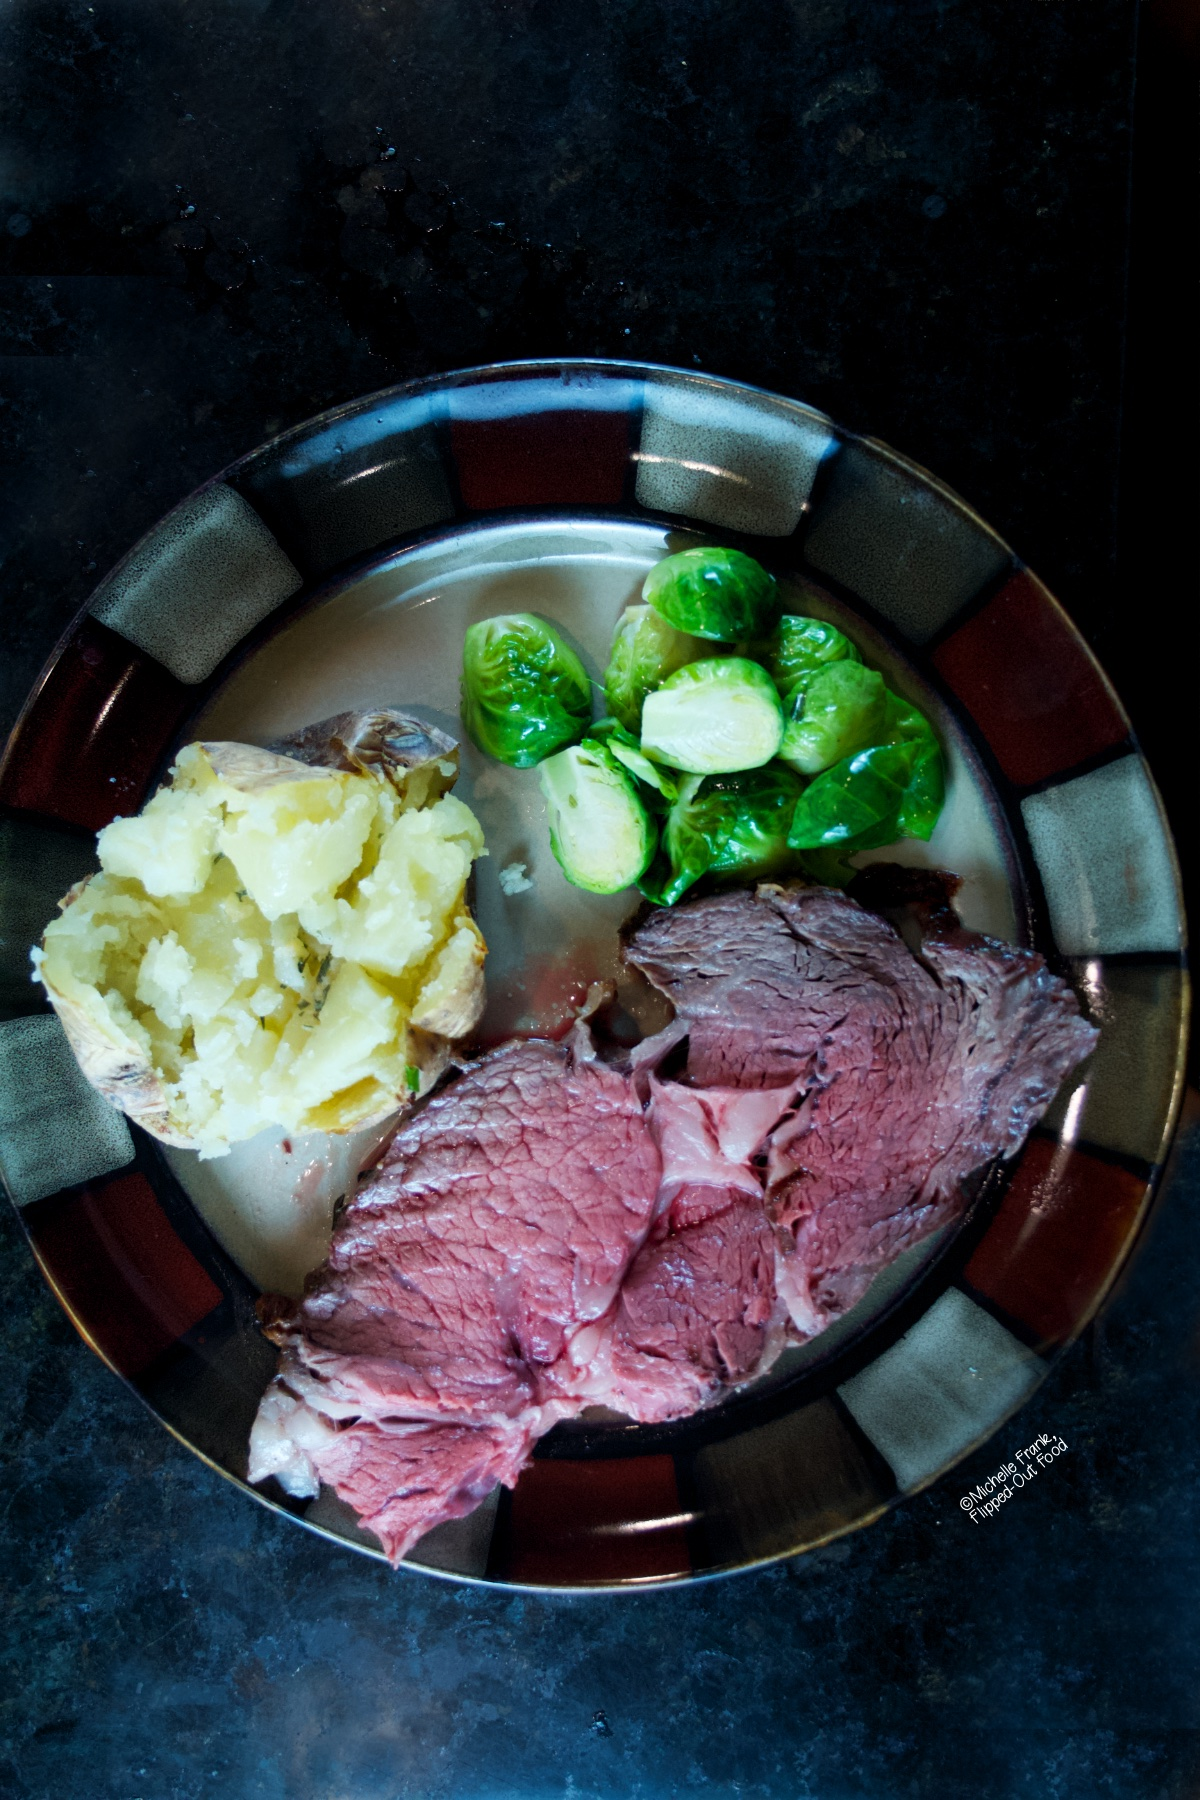 Date Night Prime for Two: a slab of prime rib on a ceramic plate with a baked potato and steamed Brussels sprouts.